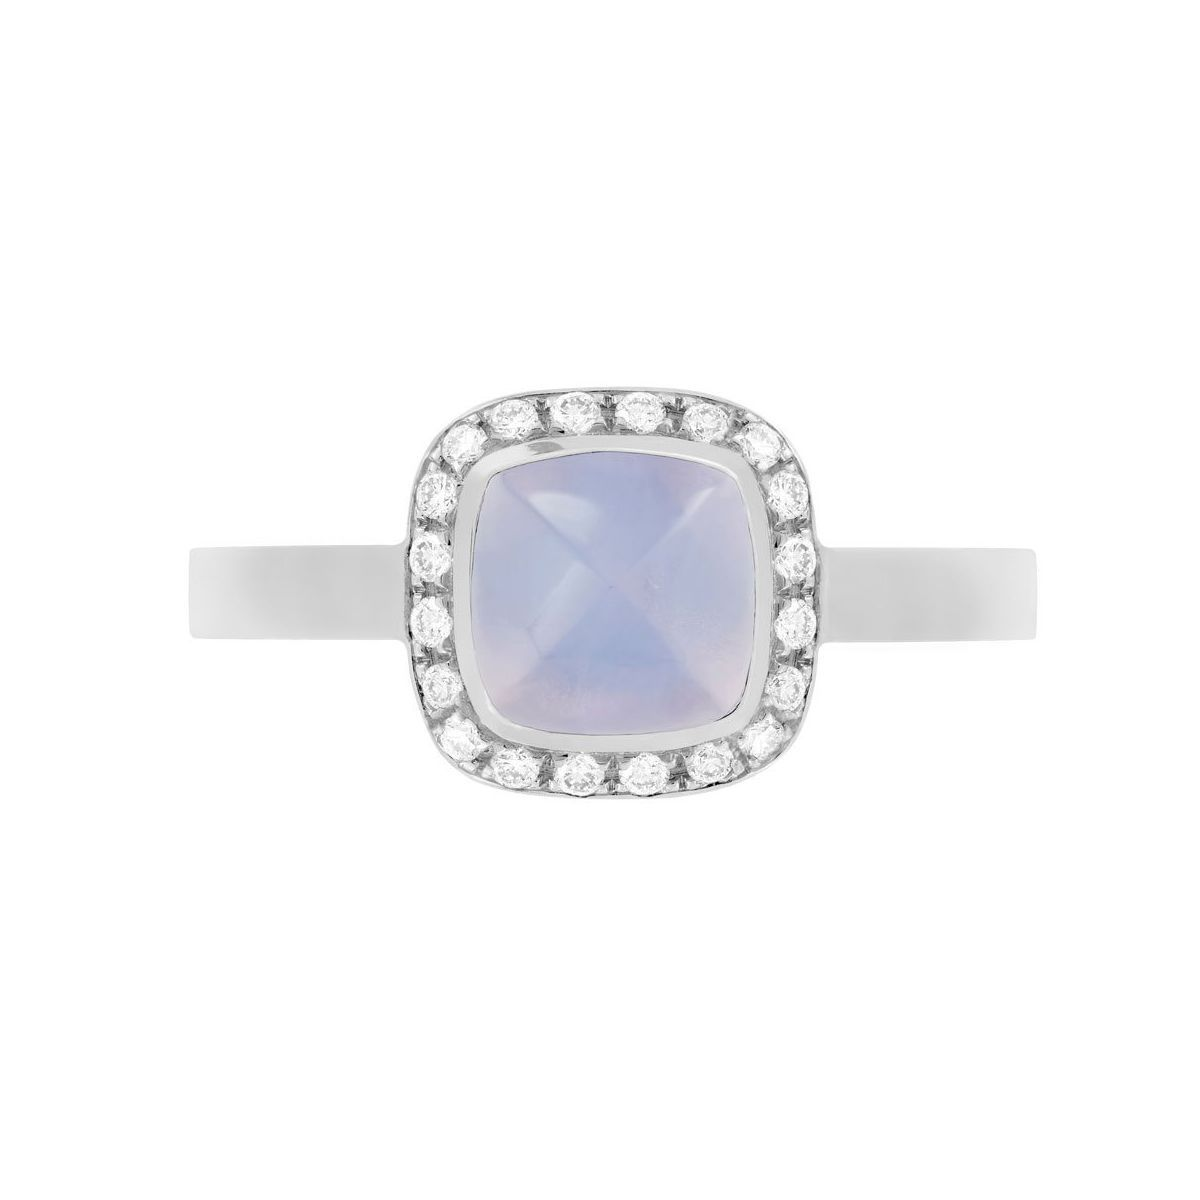 Bague FRED Pain de sucre en or blanc, diamants et calcédoine vue 2